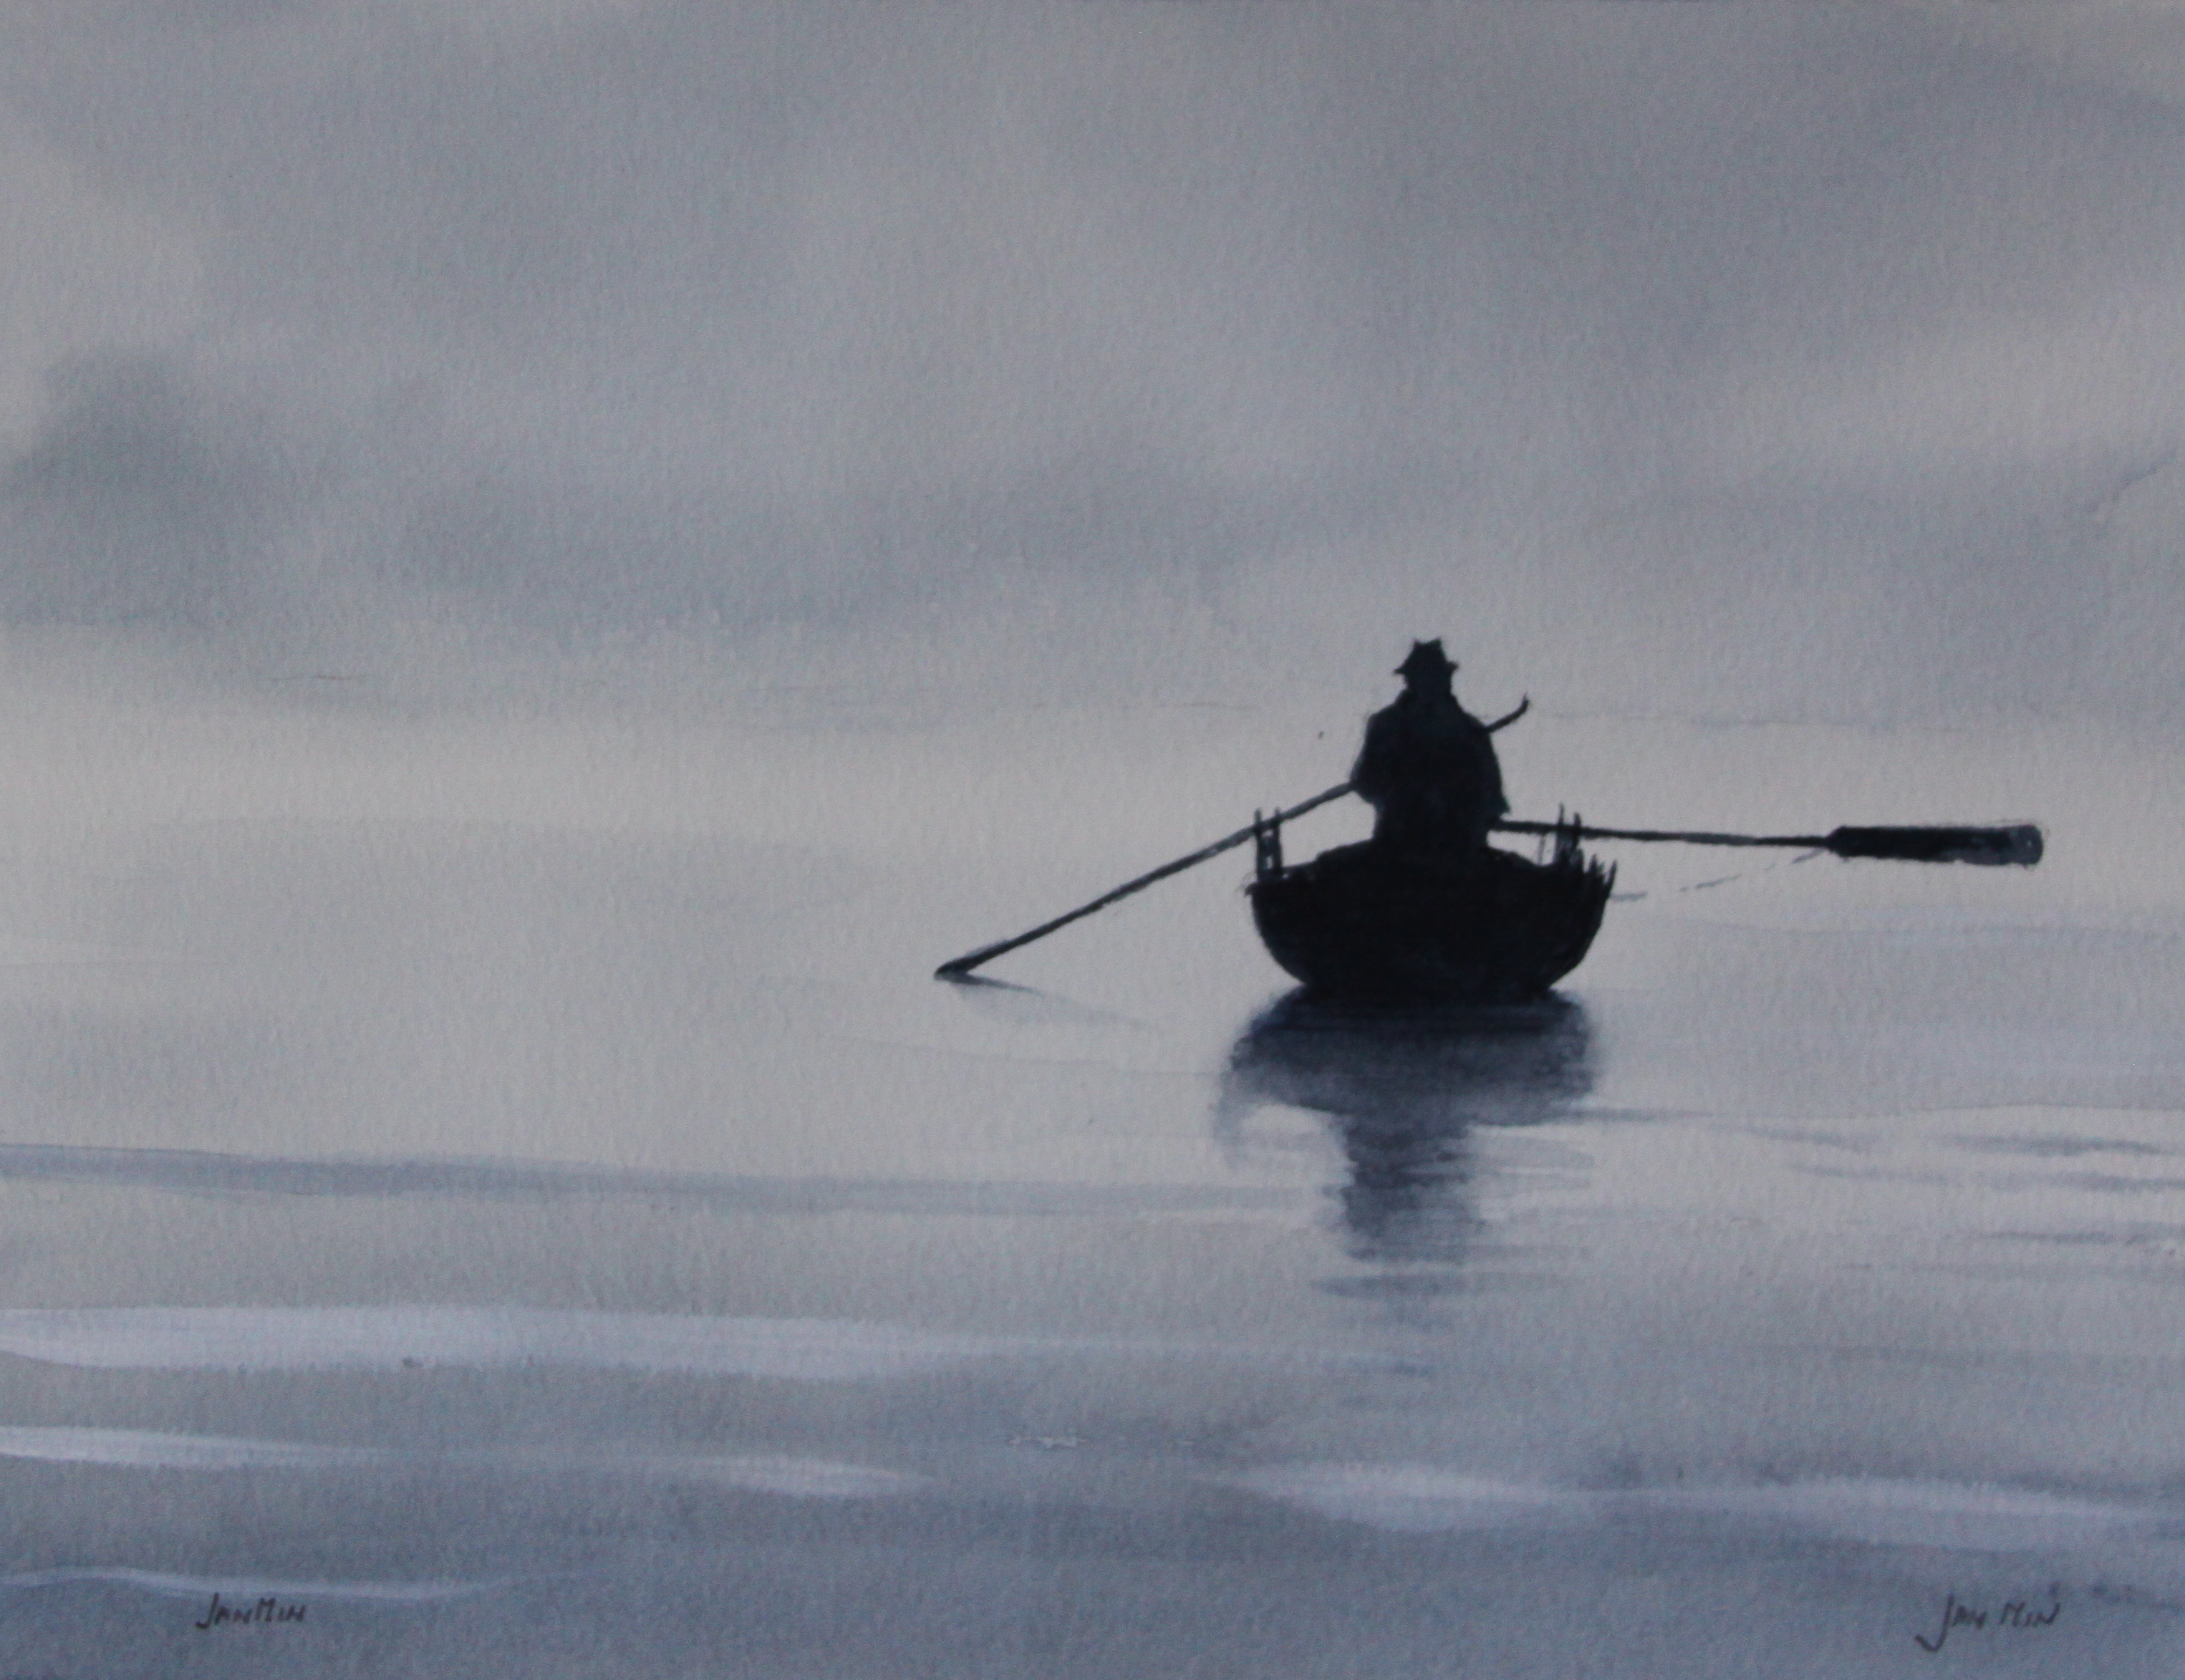 the lonely fisherman